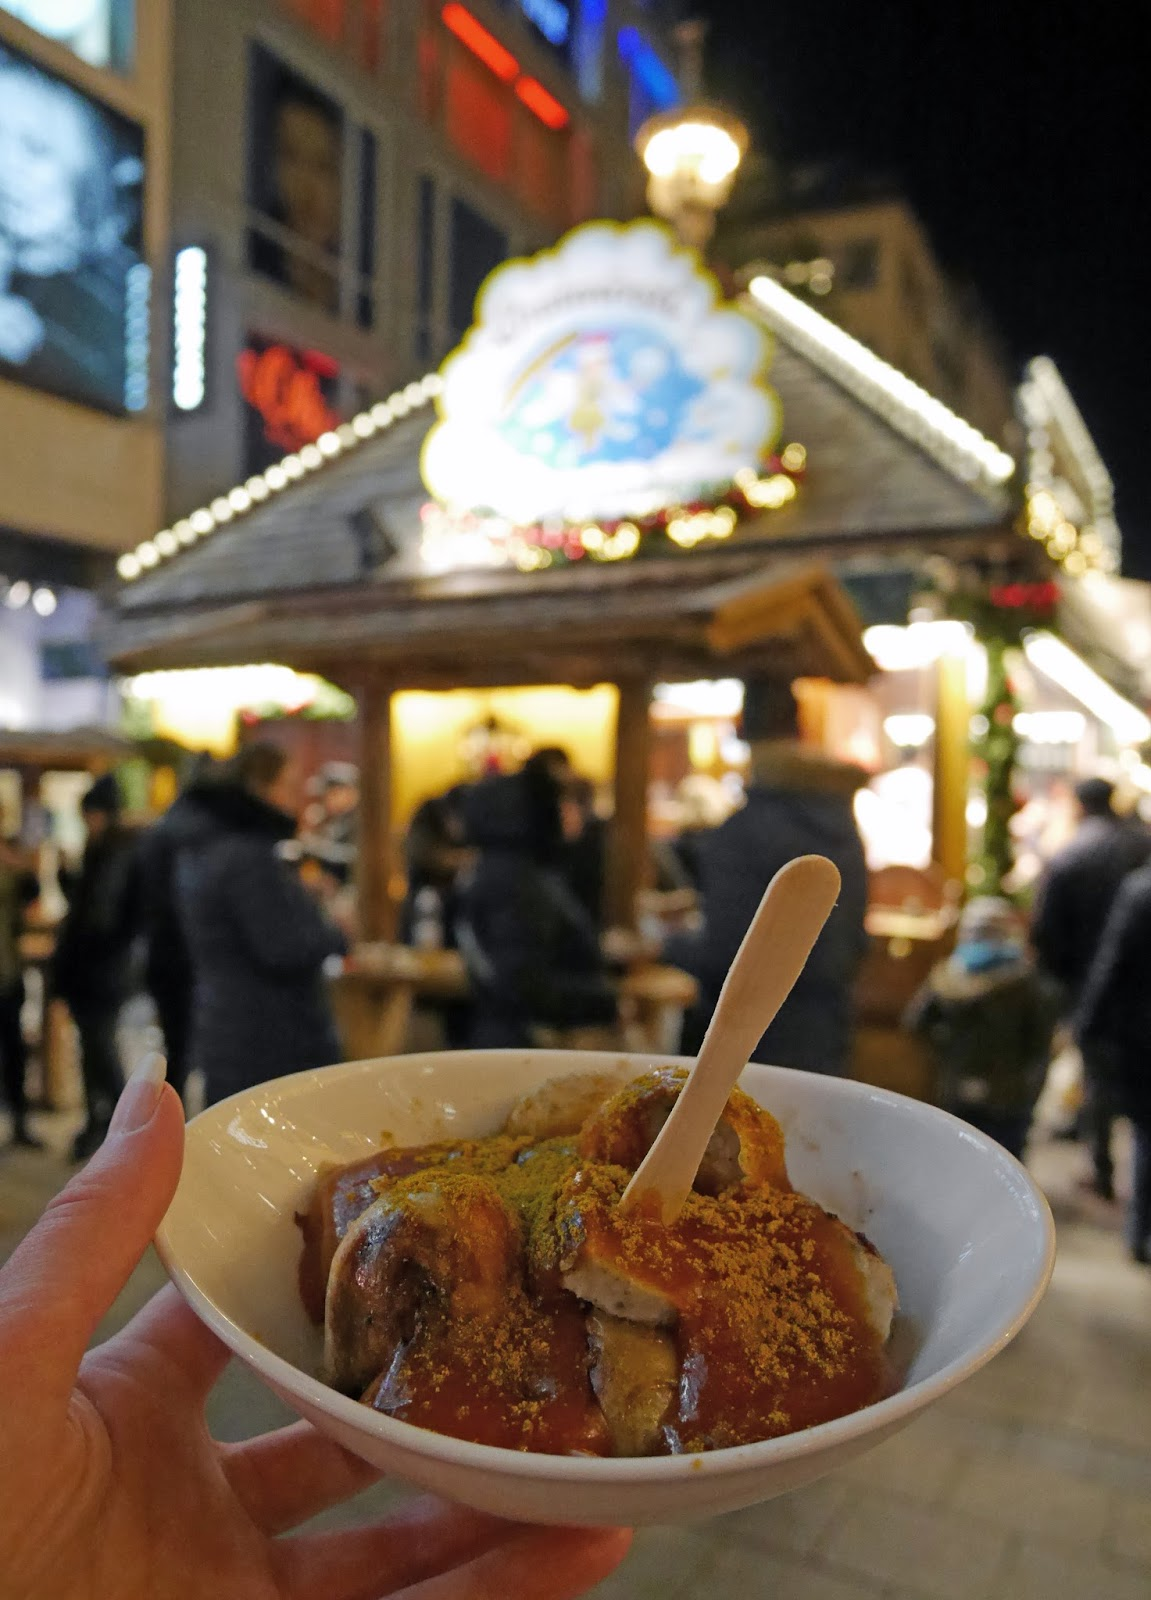 Trying currywurst at the Munich Christmas Markets